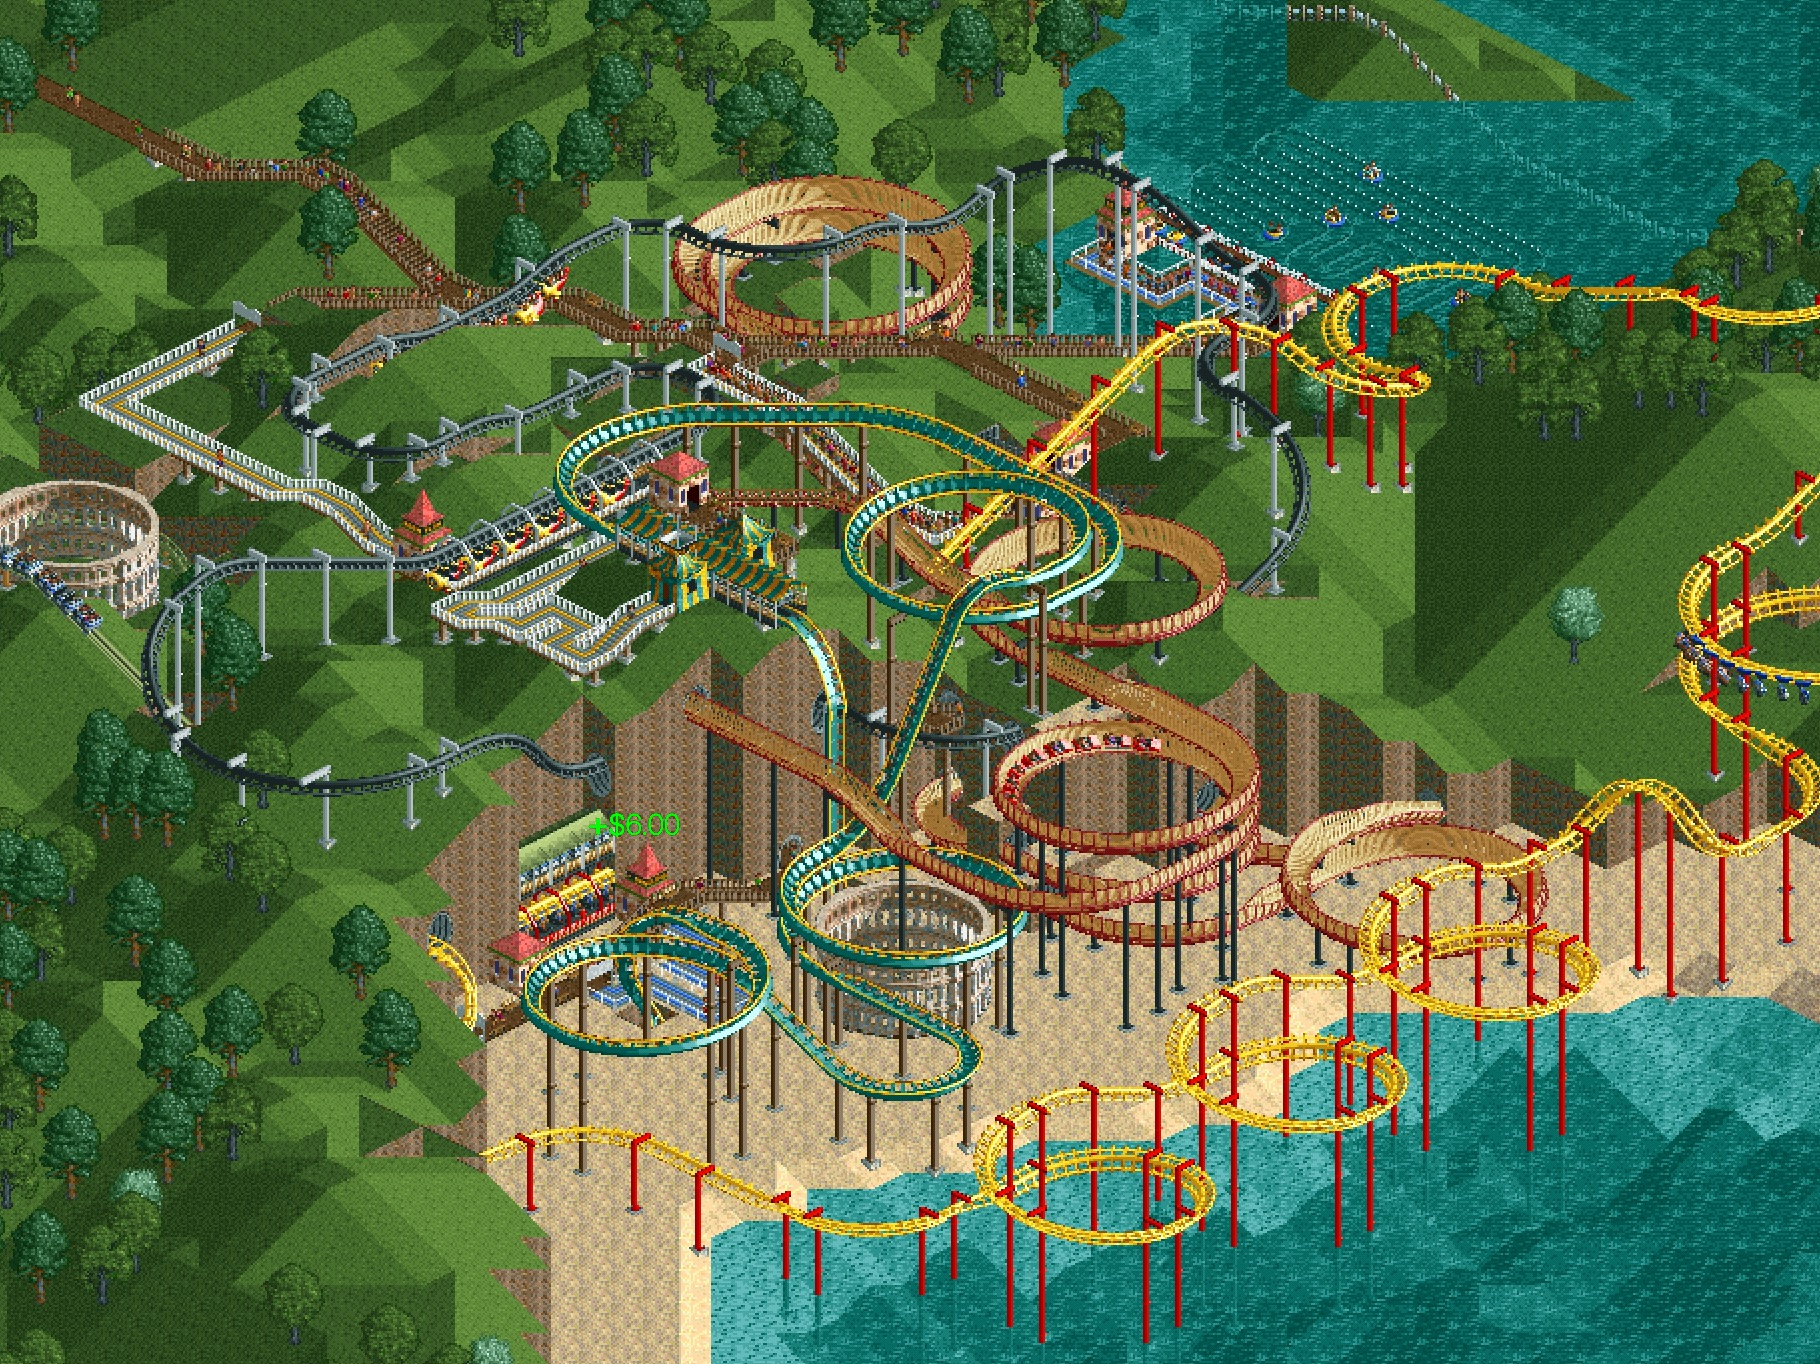 RCTC] Dragon's Cove - completed - Downloads - RCTgo